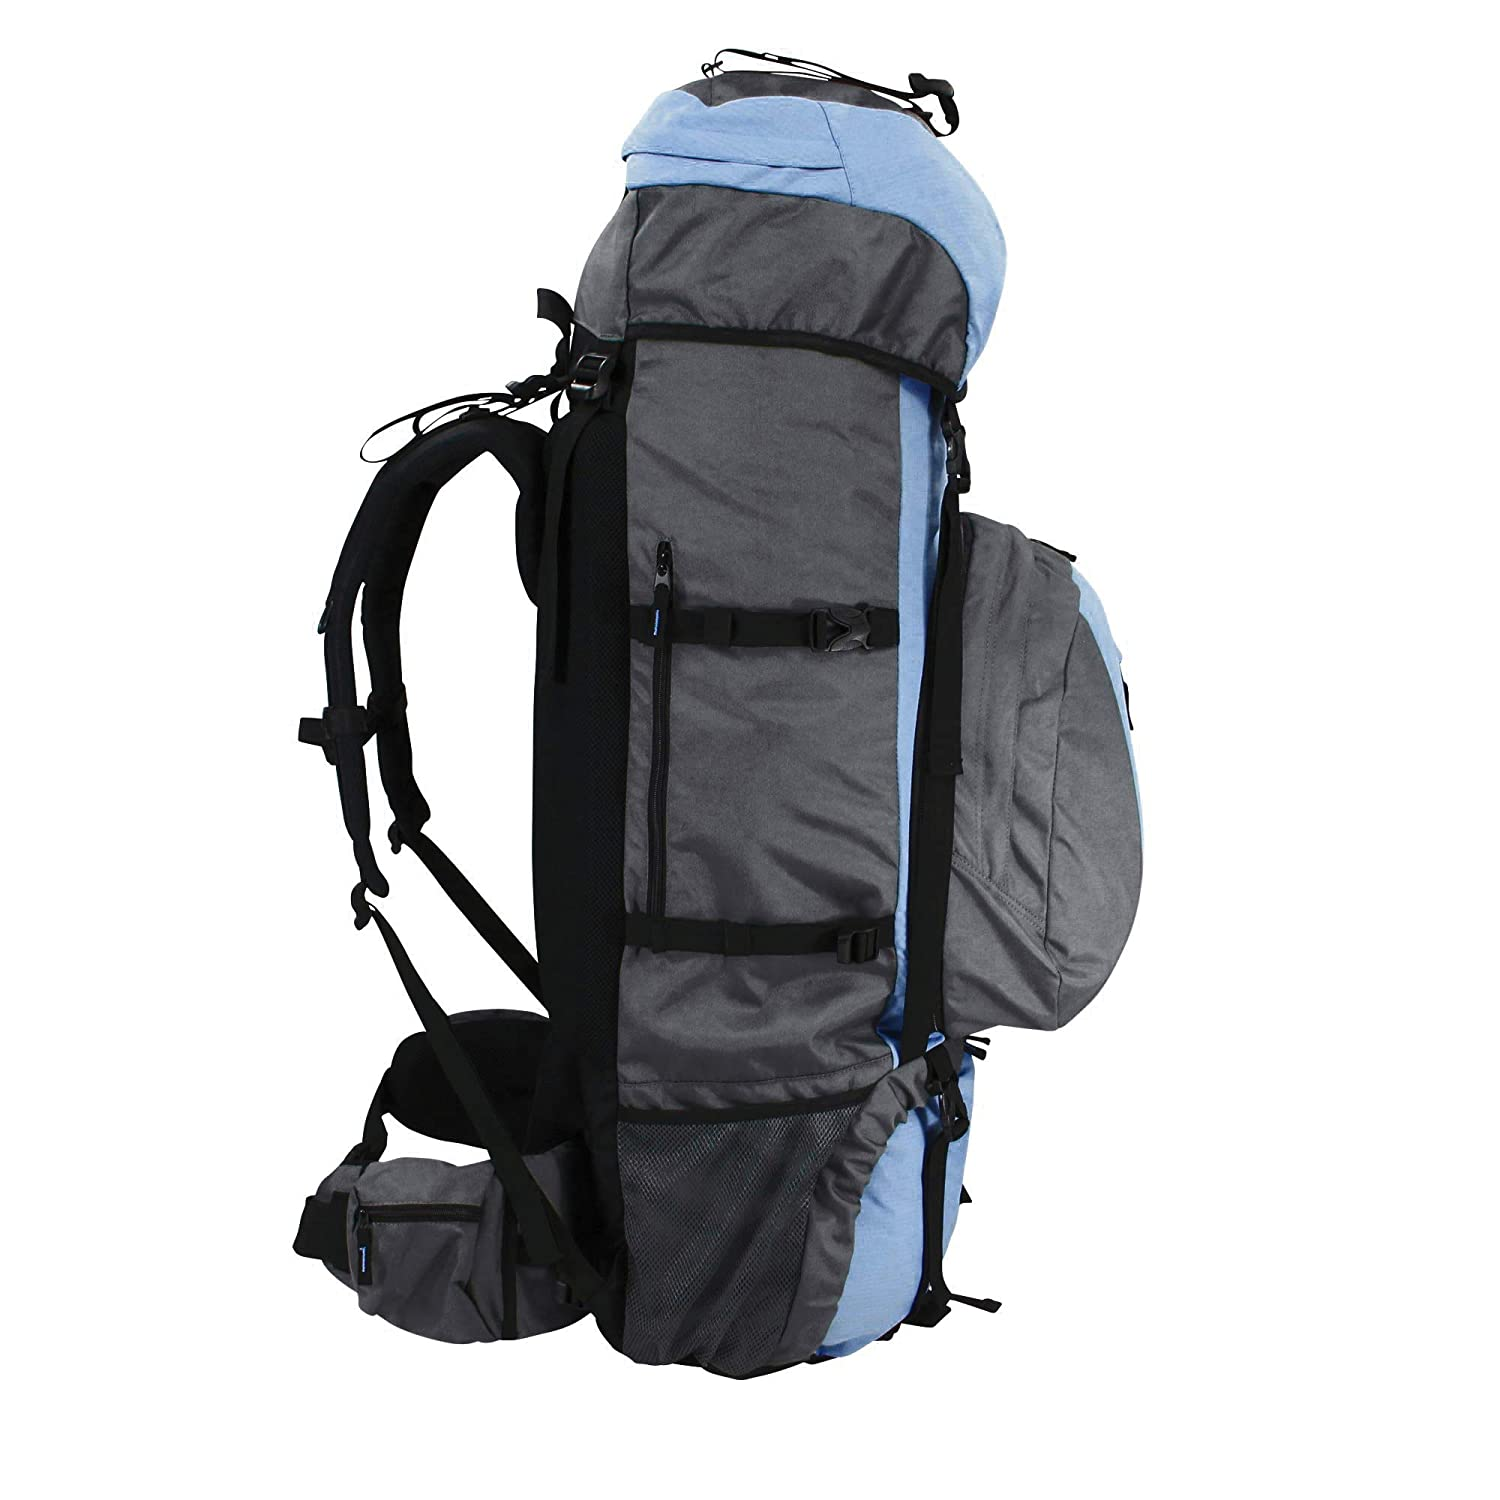 Blau // Grau 100 liters Azul 95 cm 10T Outdoor Equipment Northcote 85+15 Saco marinero